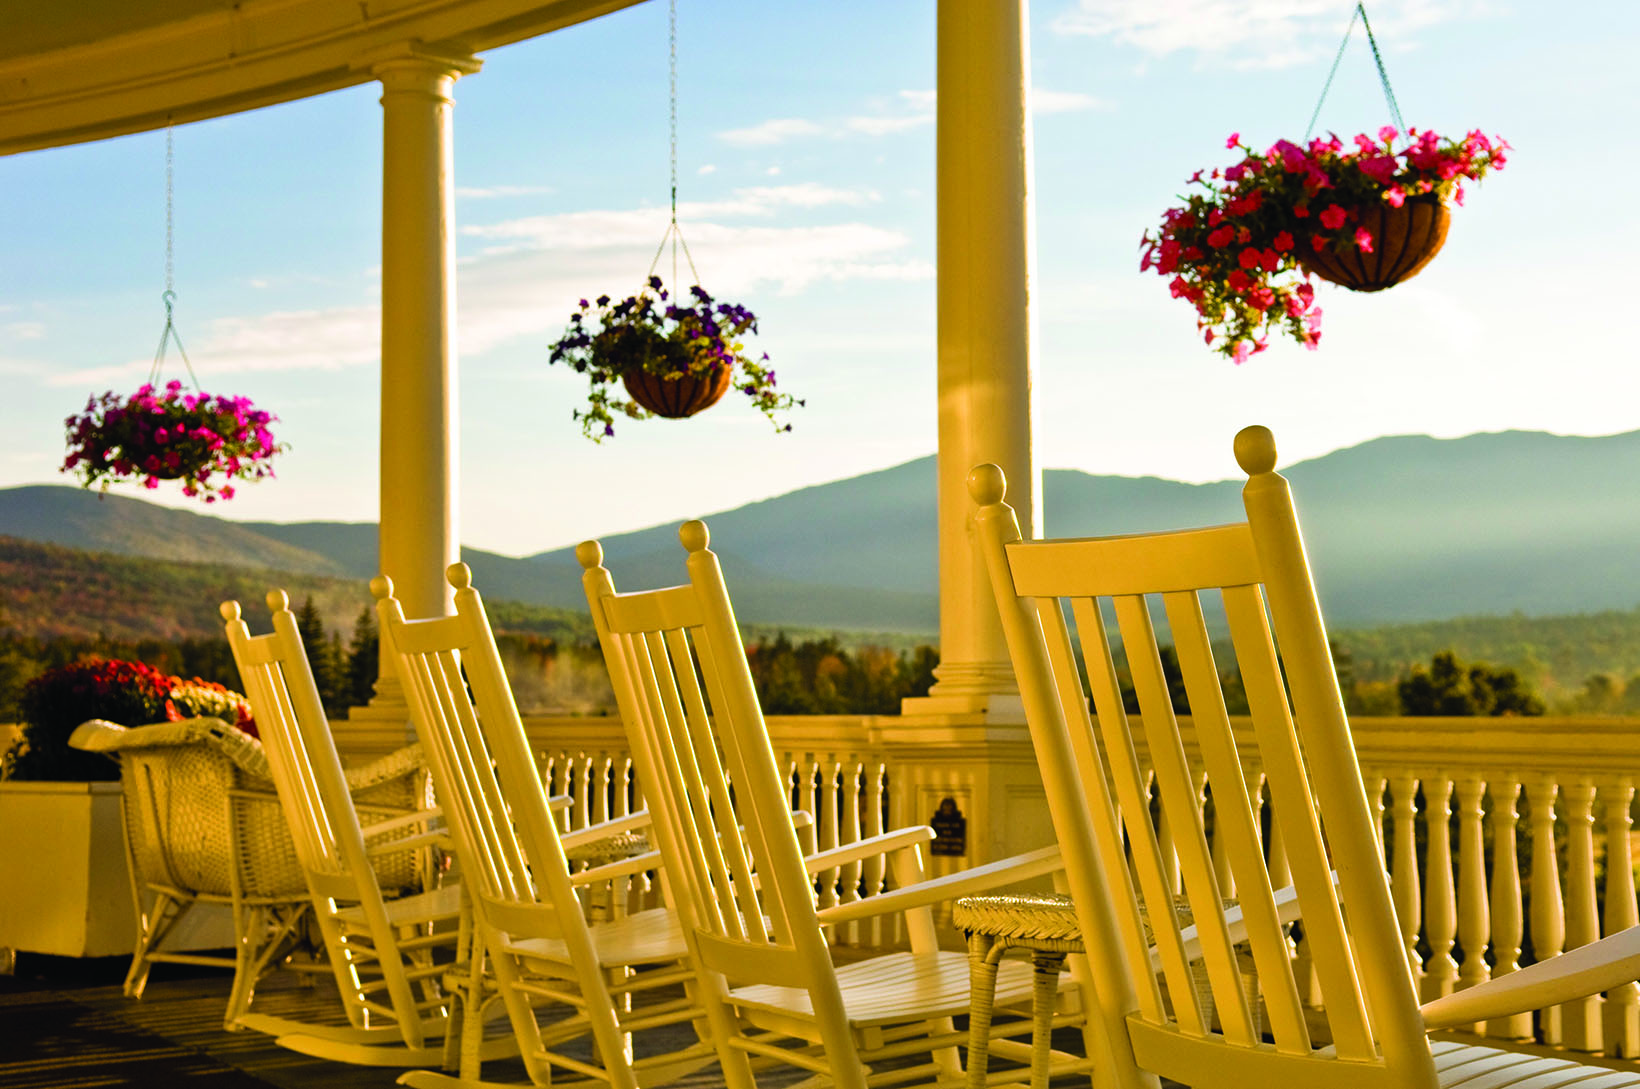 The Omni Mount Washington Resort's veranda.